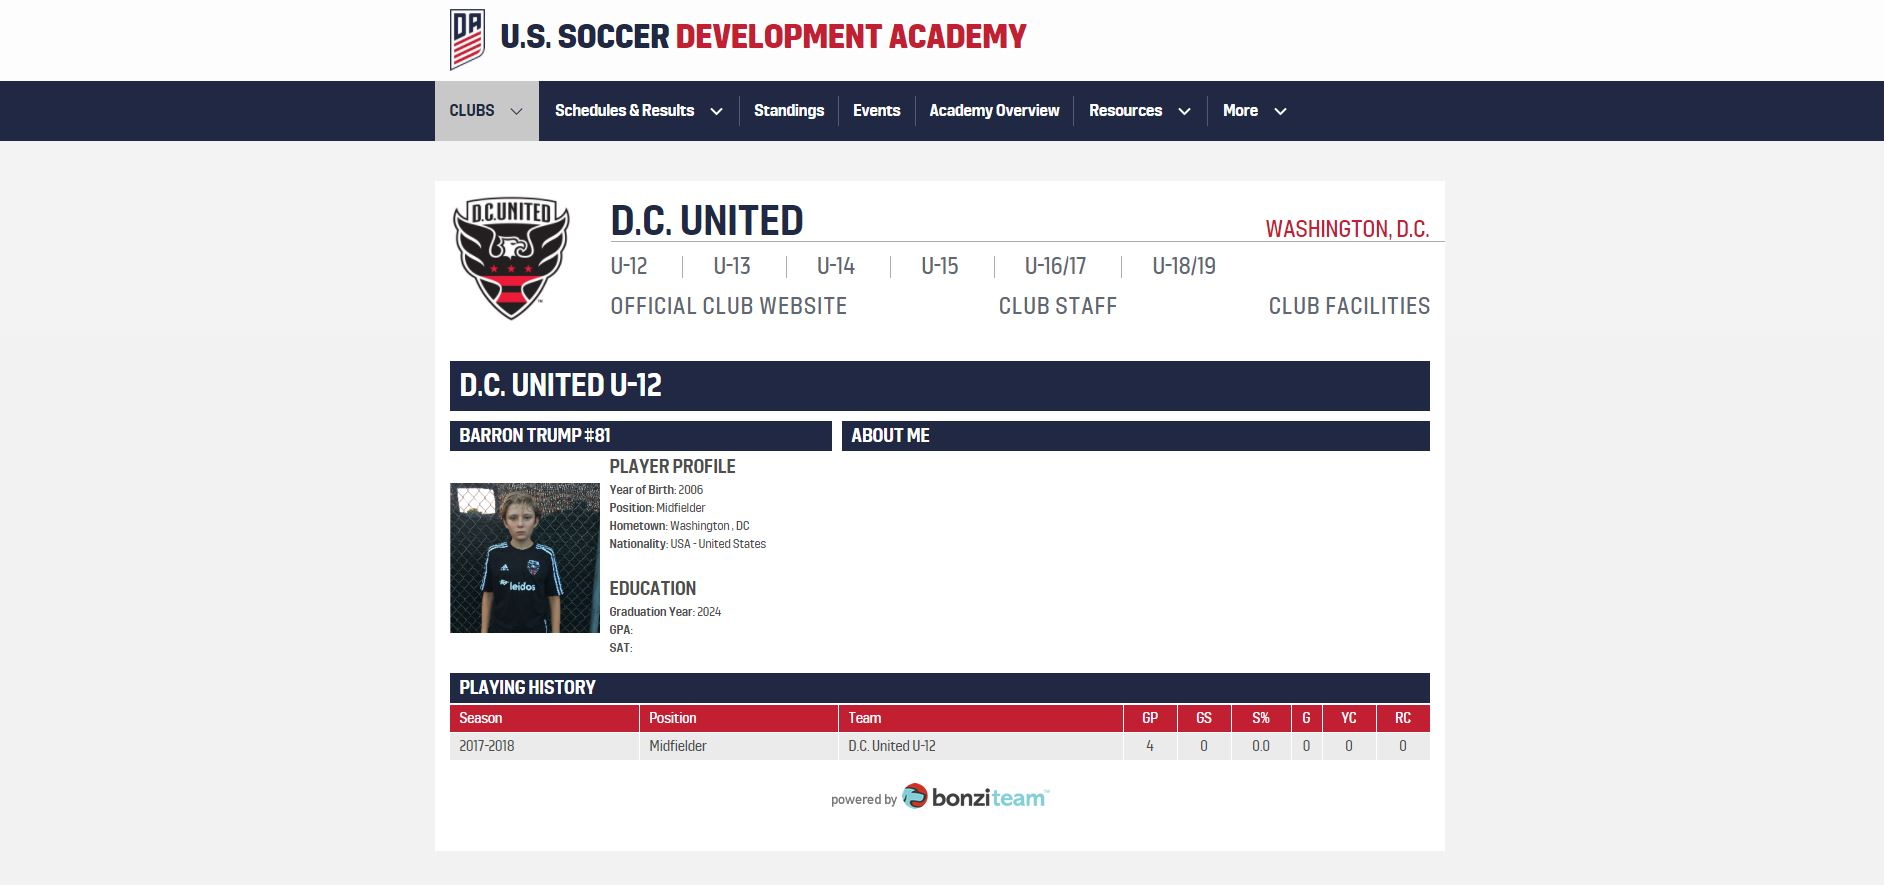 Barron Trump, DC United profile screenshot - EMBED ONLY